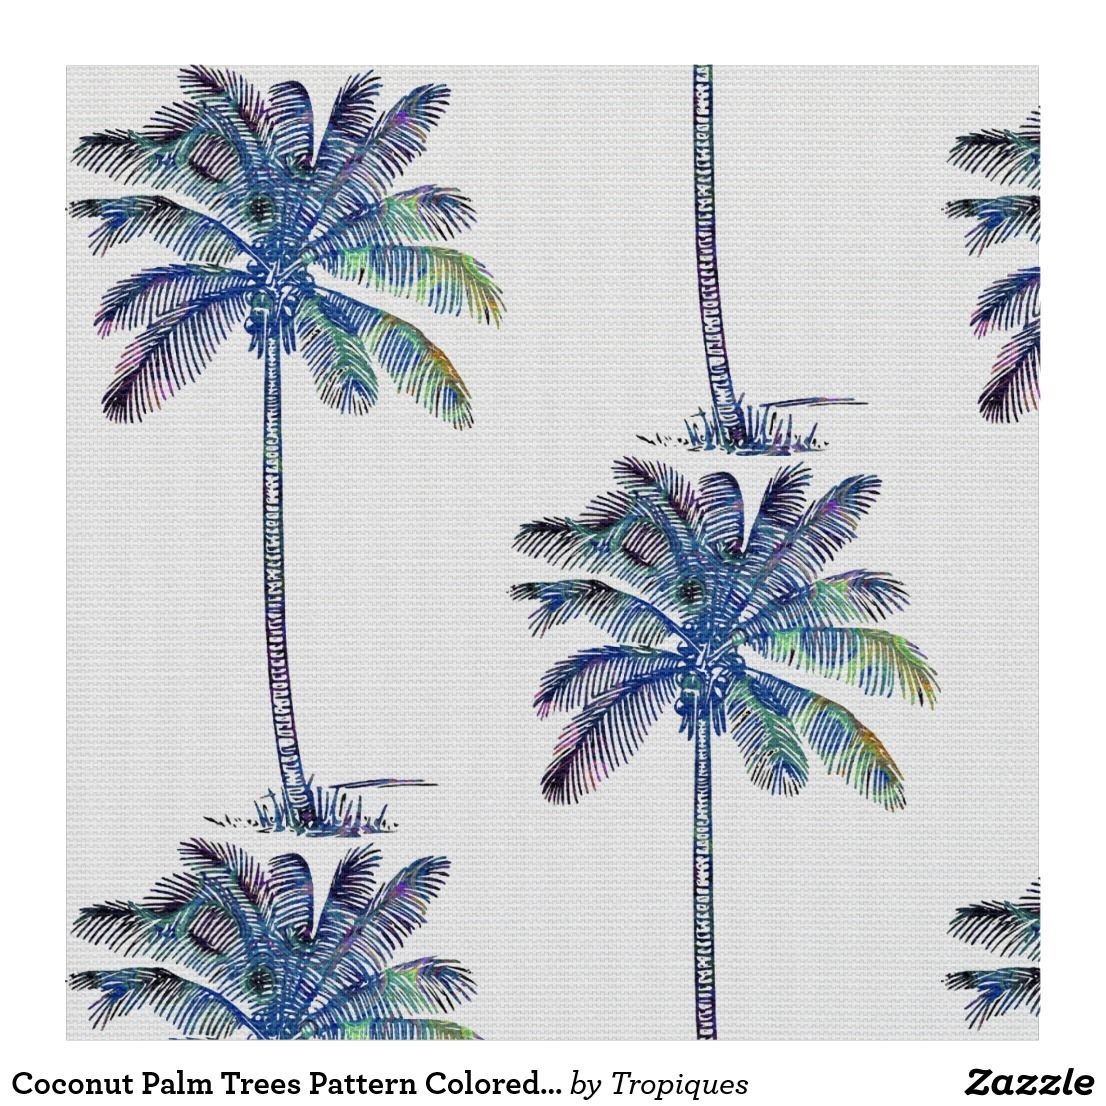 1106x1106 Coconut Palm Trees Pattern Colored Pencil Drawing Fabric Coconut